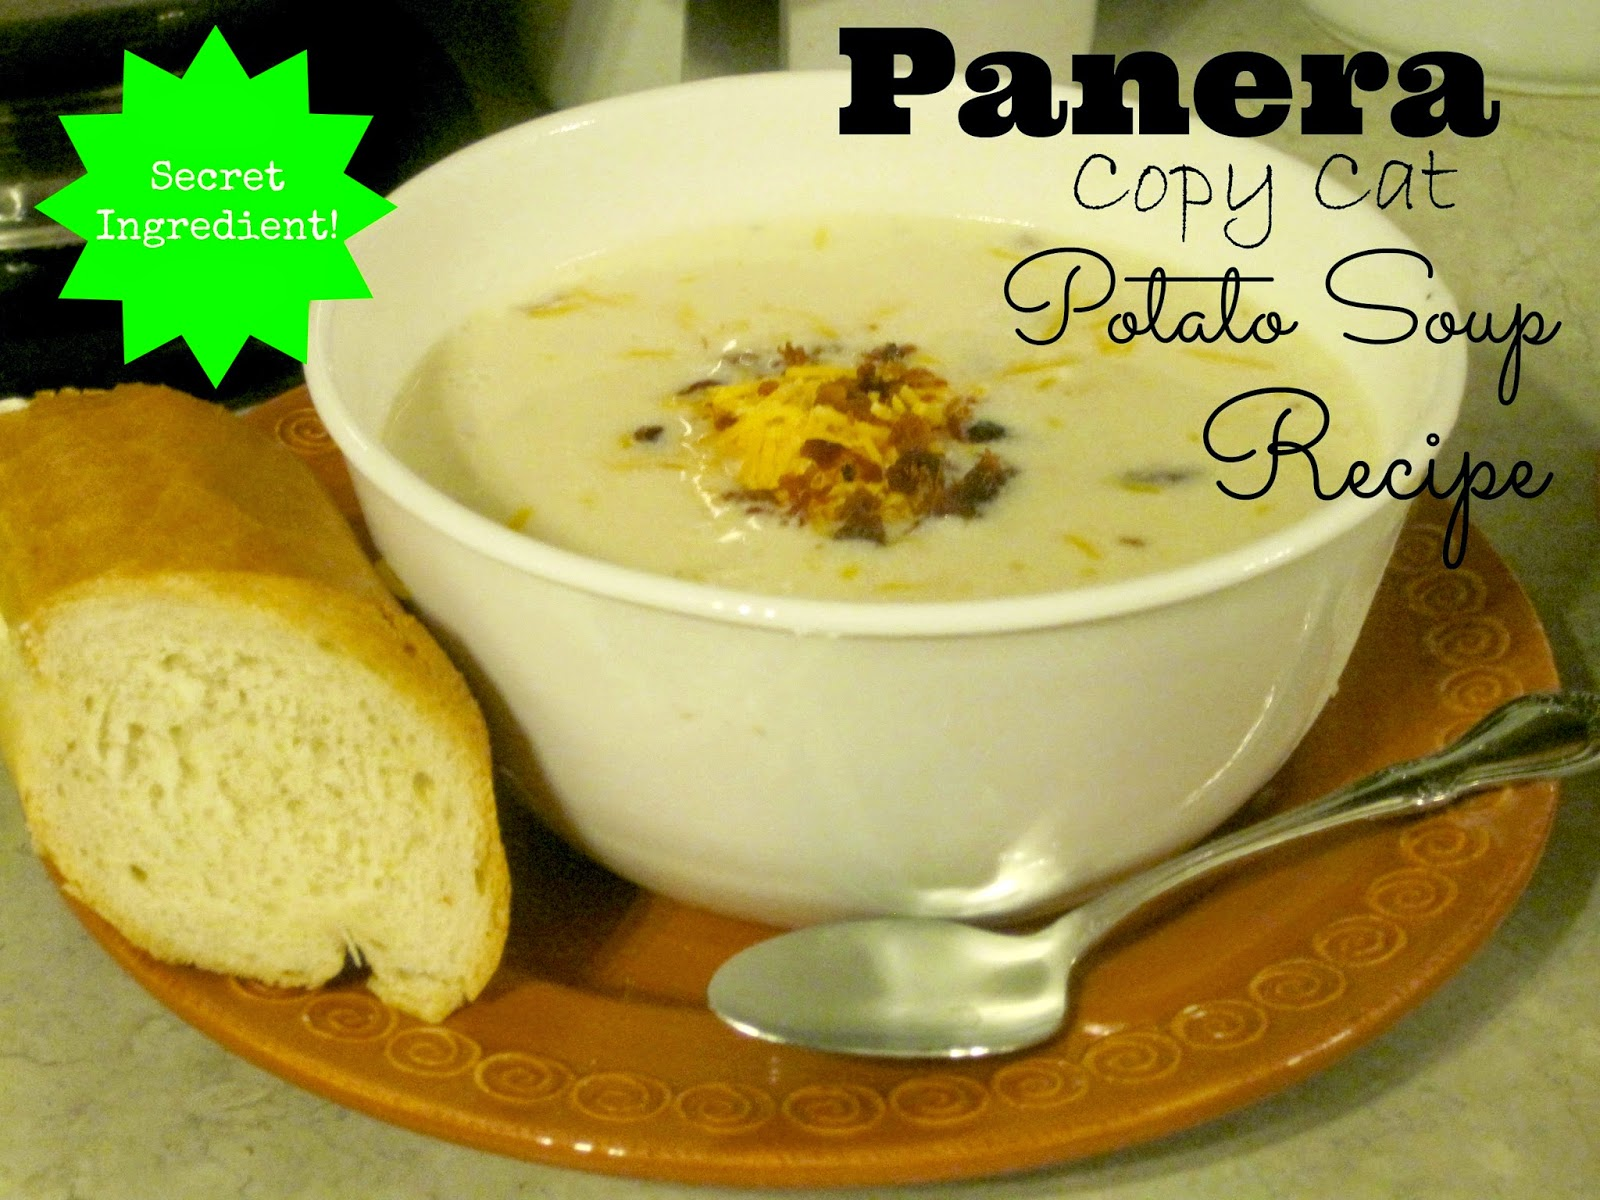 http://decoratedchaos.blogspot.com/2013/11/potato-soup-recipe-panera-copy-cat.html